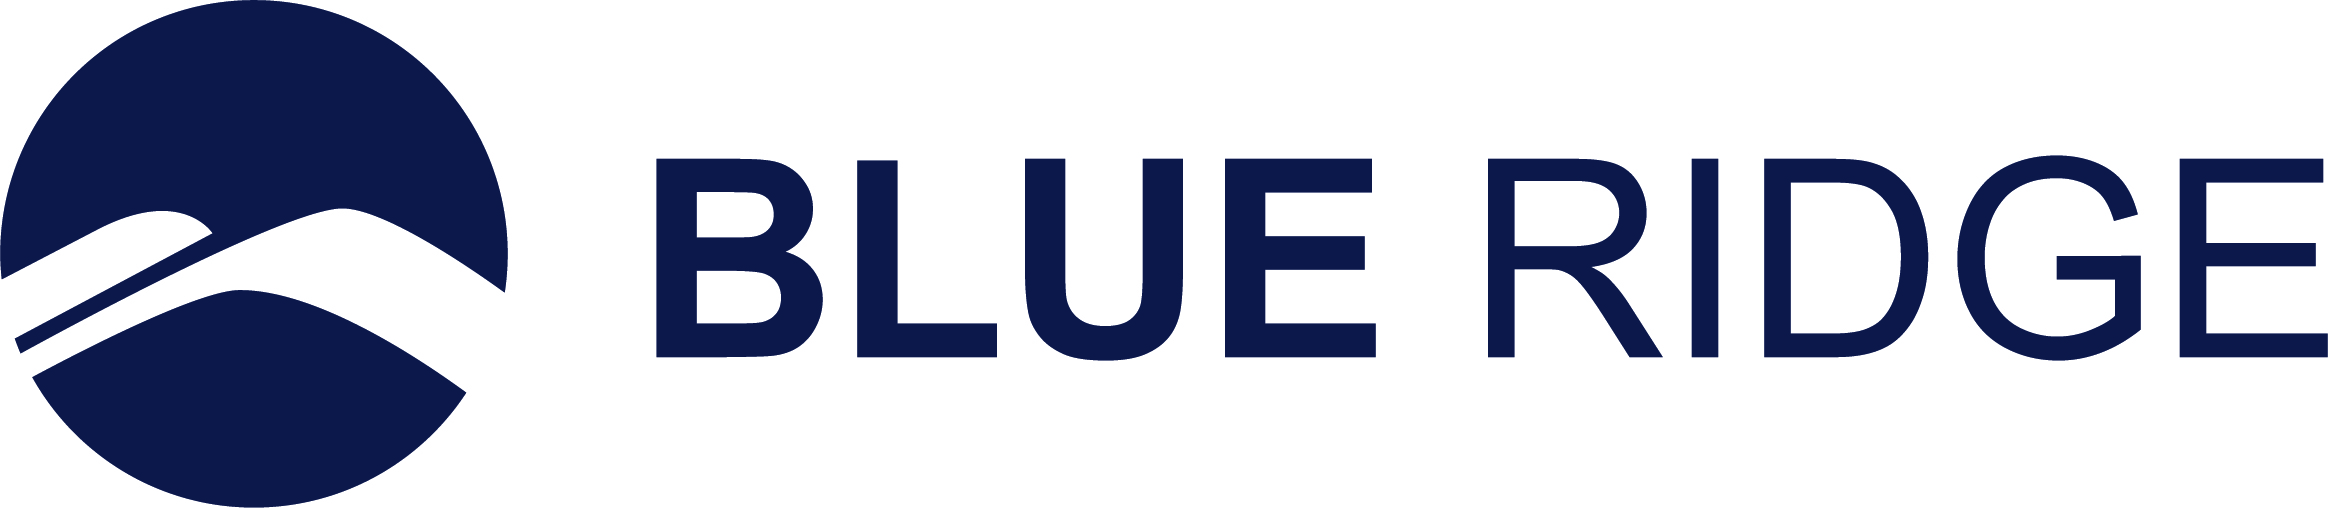 Ed Rusch, CMO at Blue Ridge Named to Prestigious Forbes Communications Council